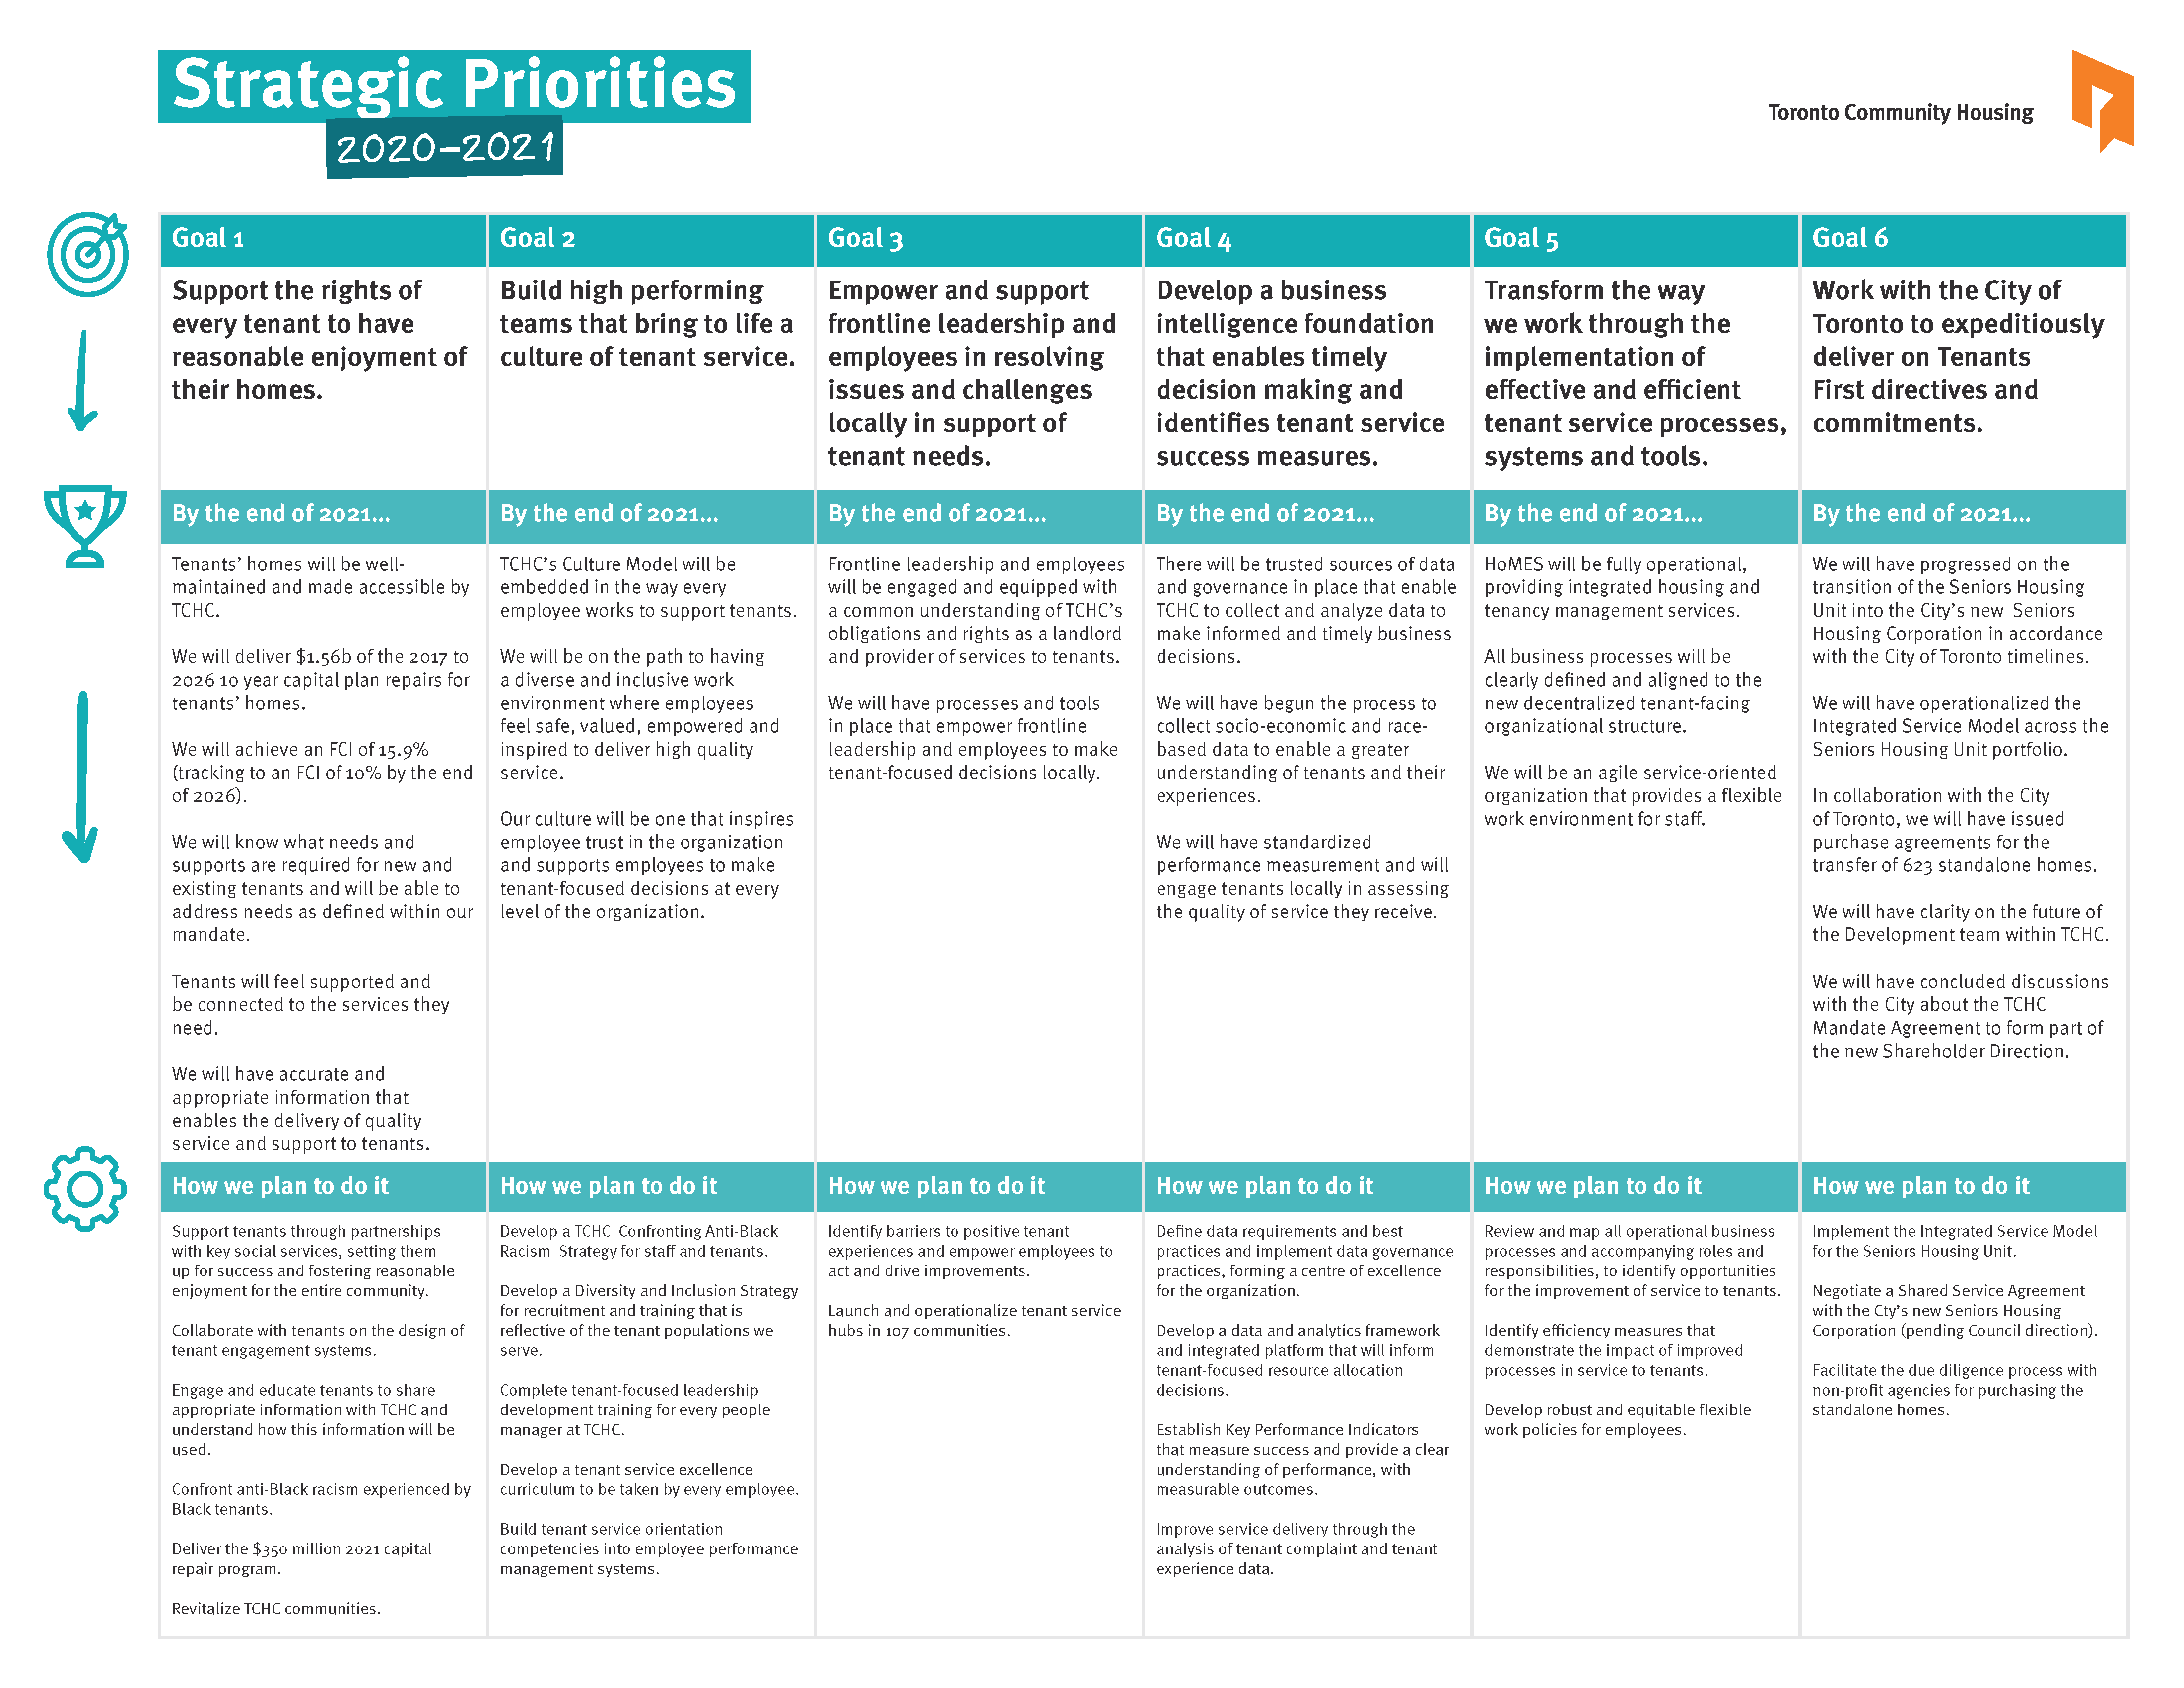 table of the 2020-2021 strategic priorities